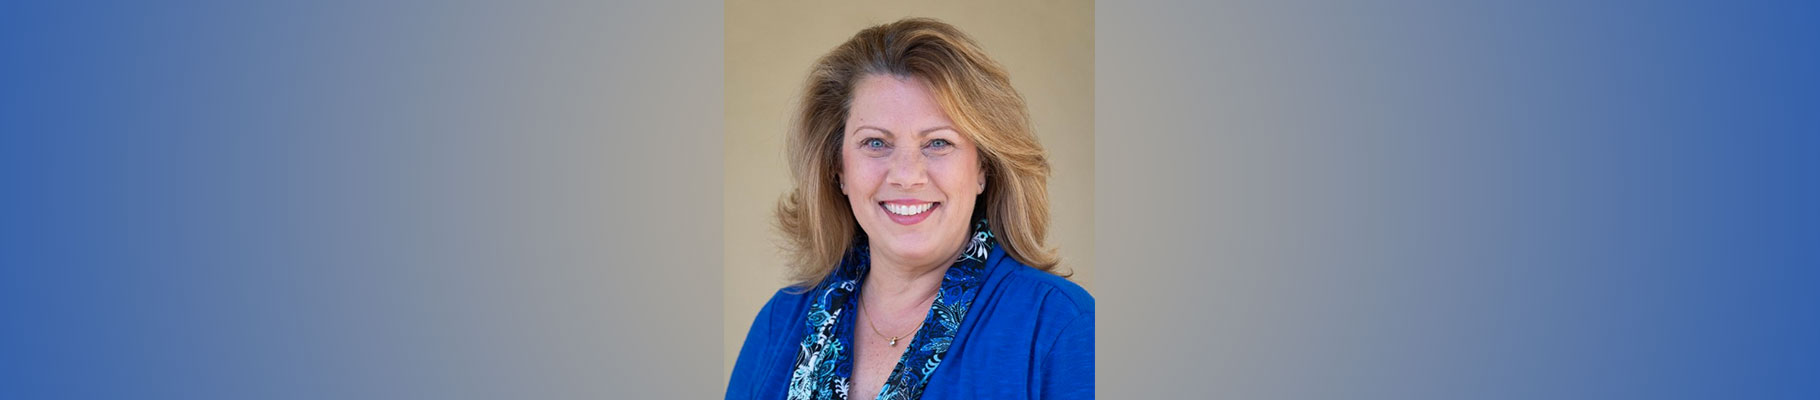 Beth Eaton-Cafarelli Joins Water Pointe Realty Group